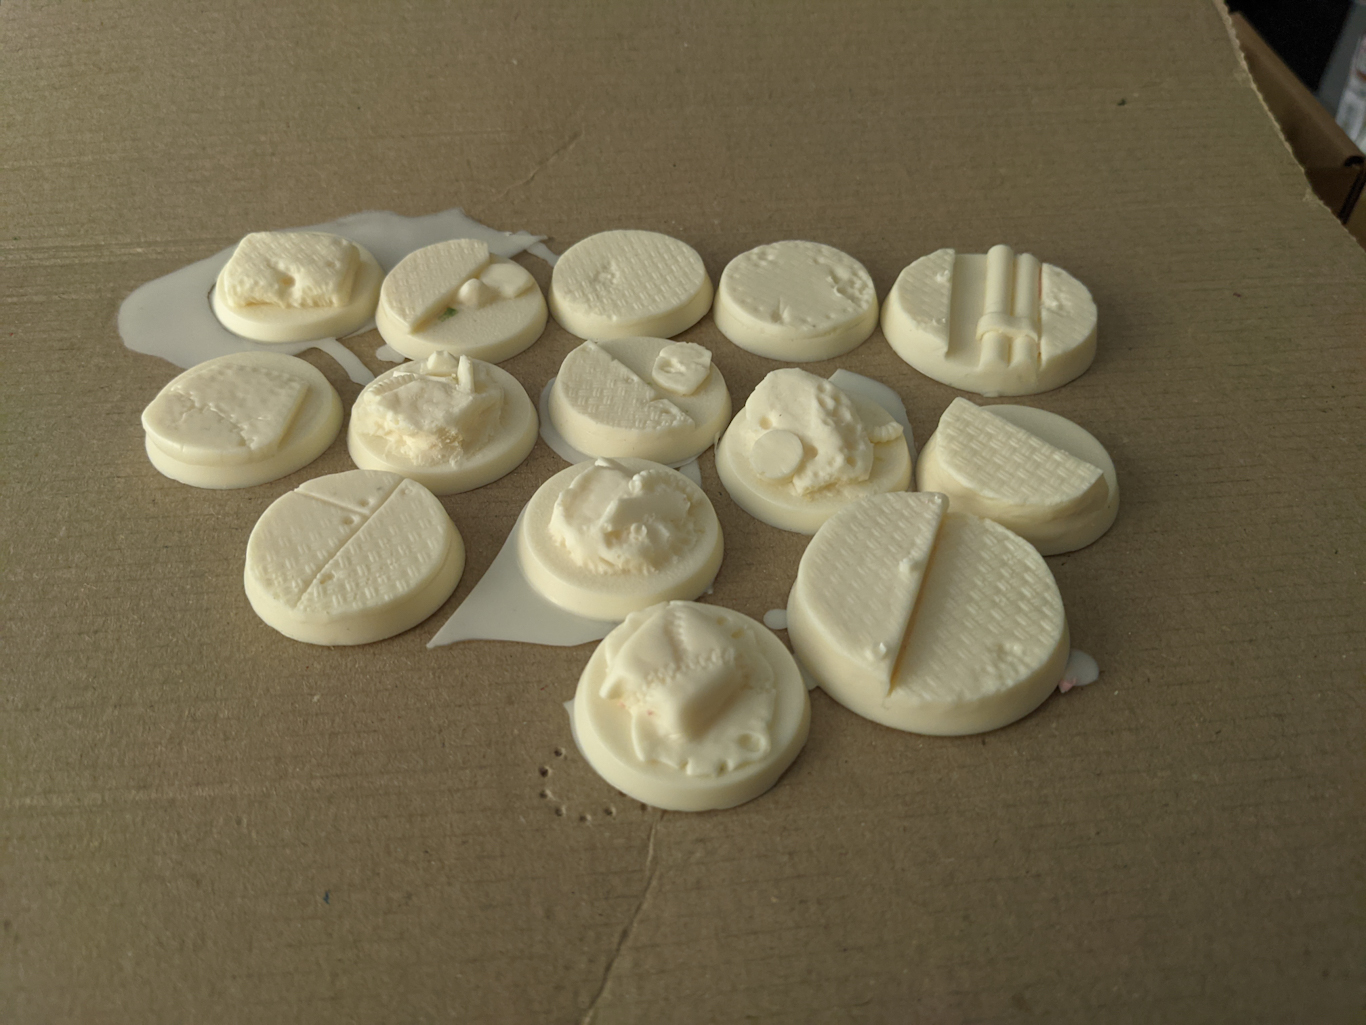 A set of moulded bases for models, in a pale cream colour like white chocolate